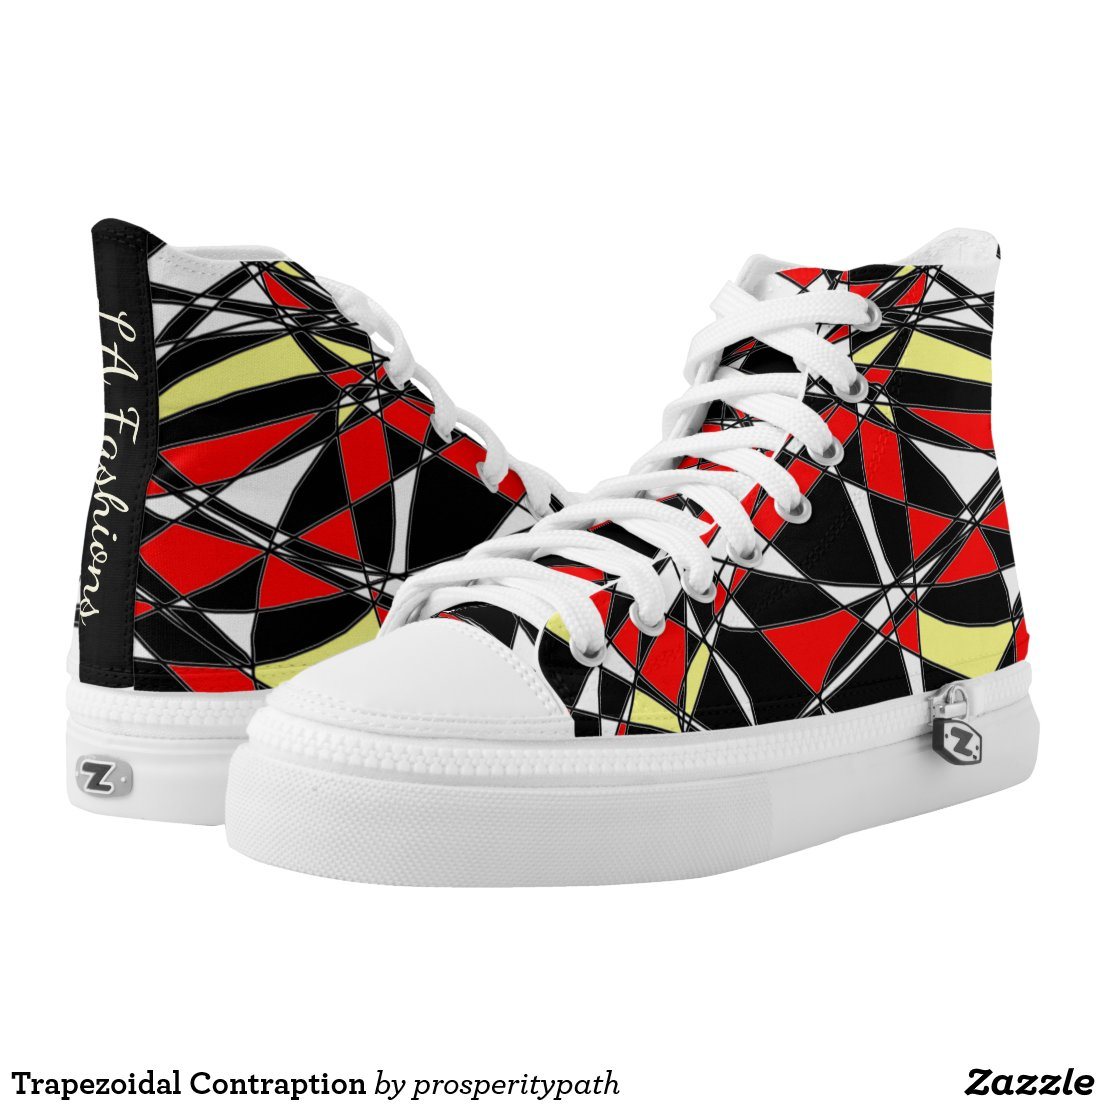 Trapezoidal Contraption High-Top Sneakers